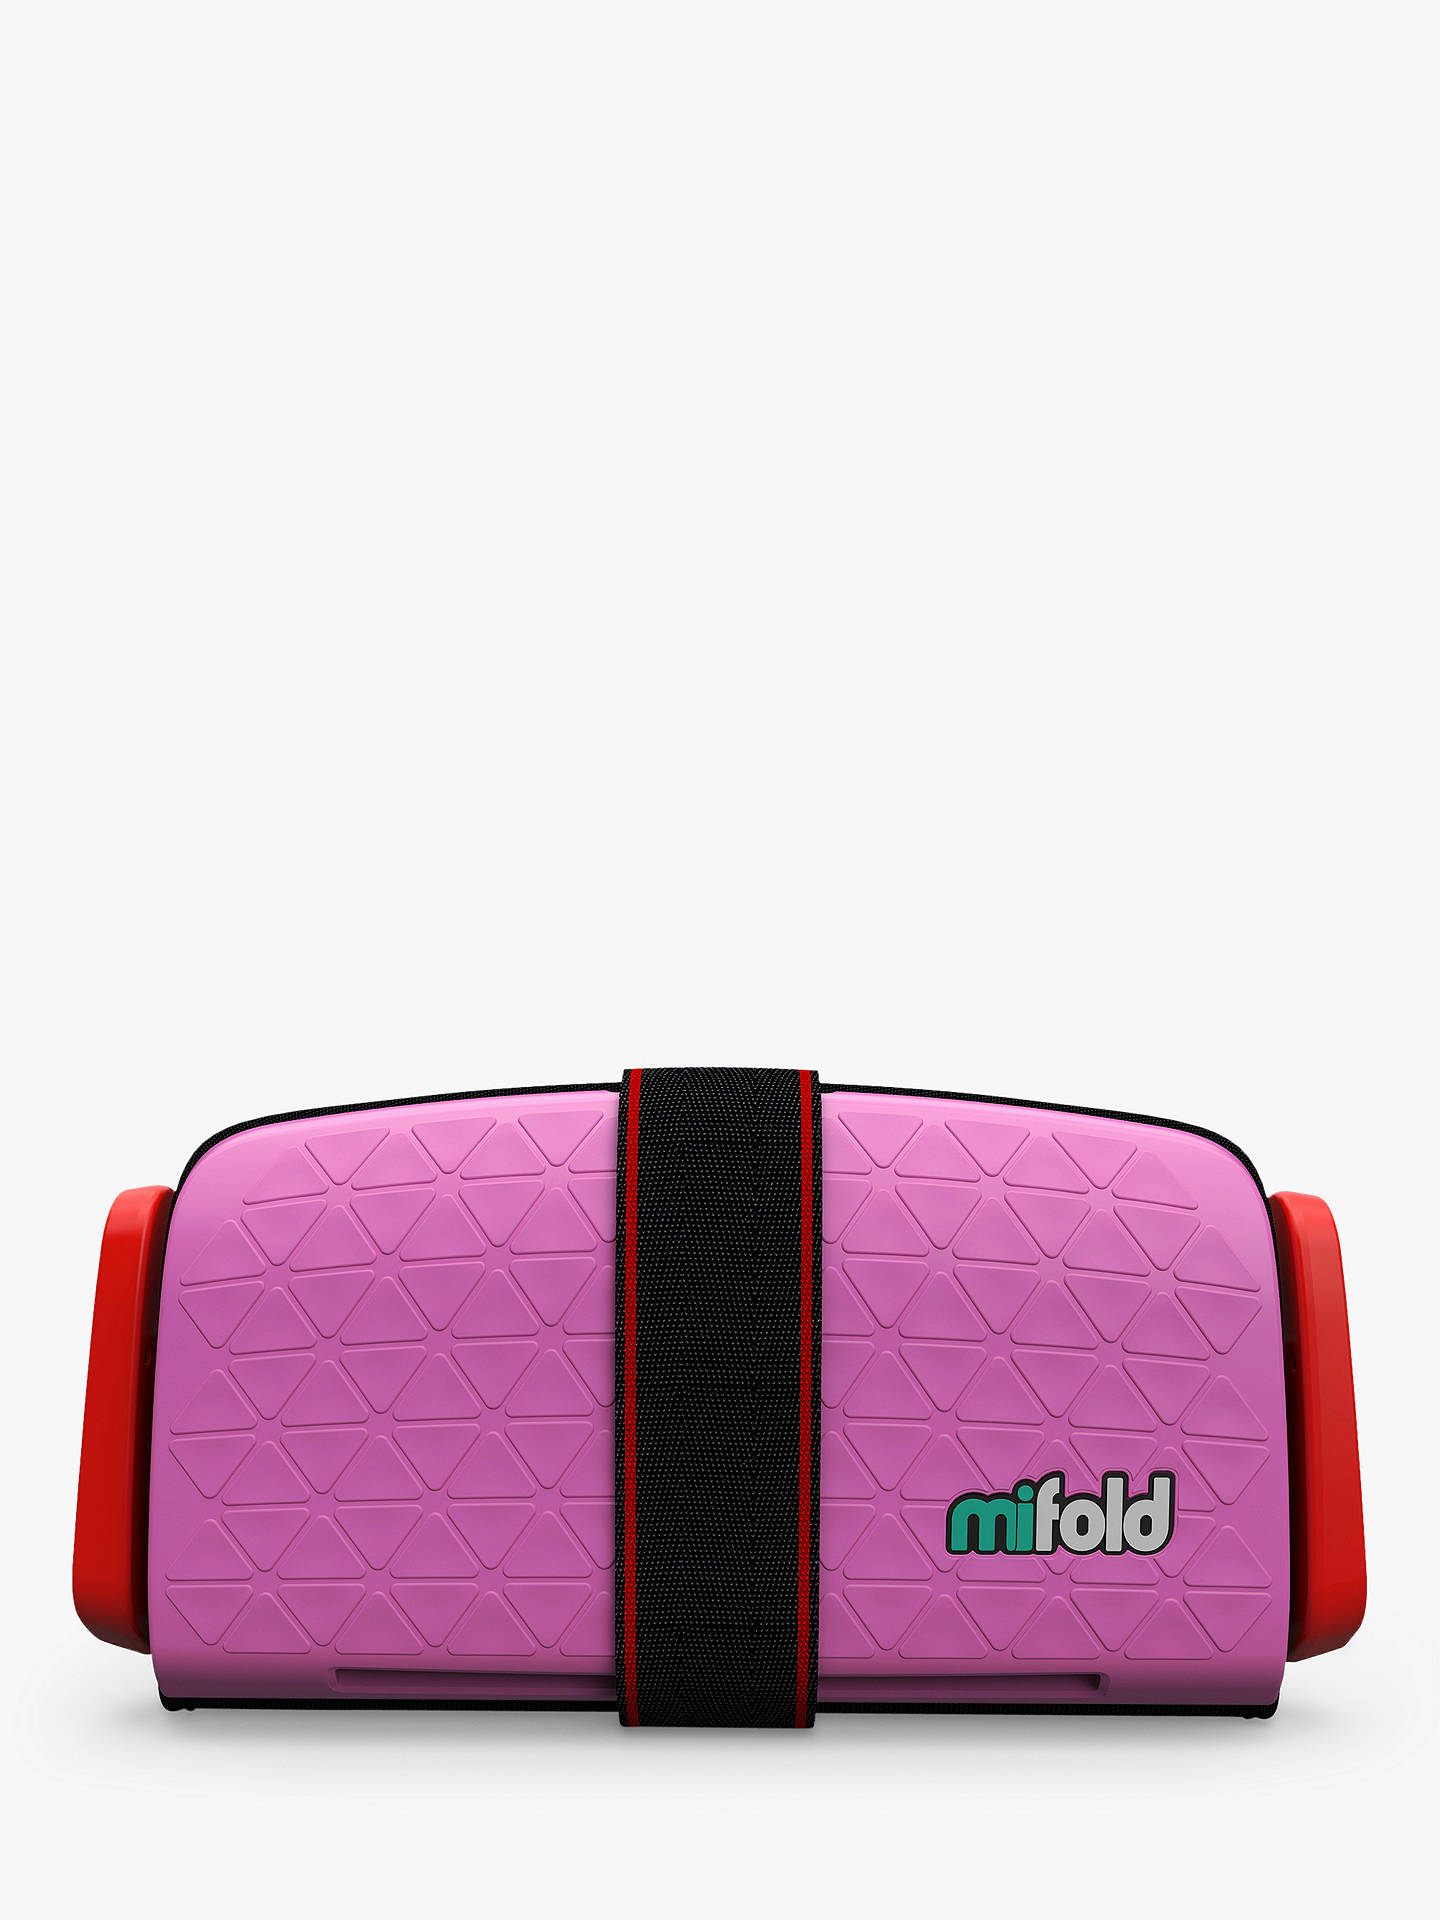 Buymifold Grab and Go Child Restraint, Perfect Pink Online at johnlewis.com